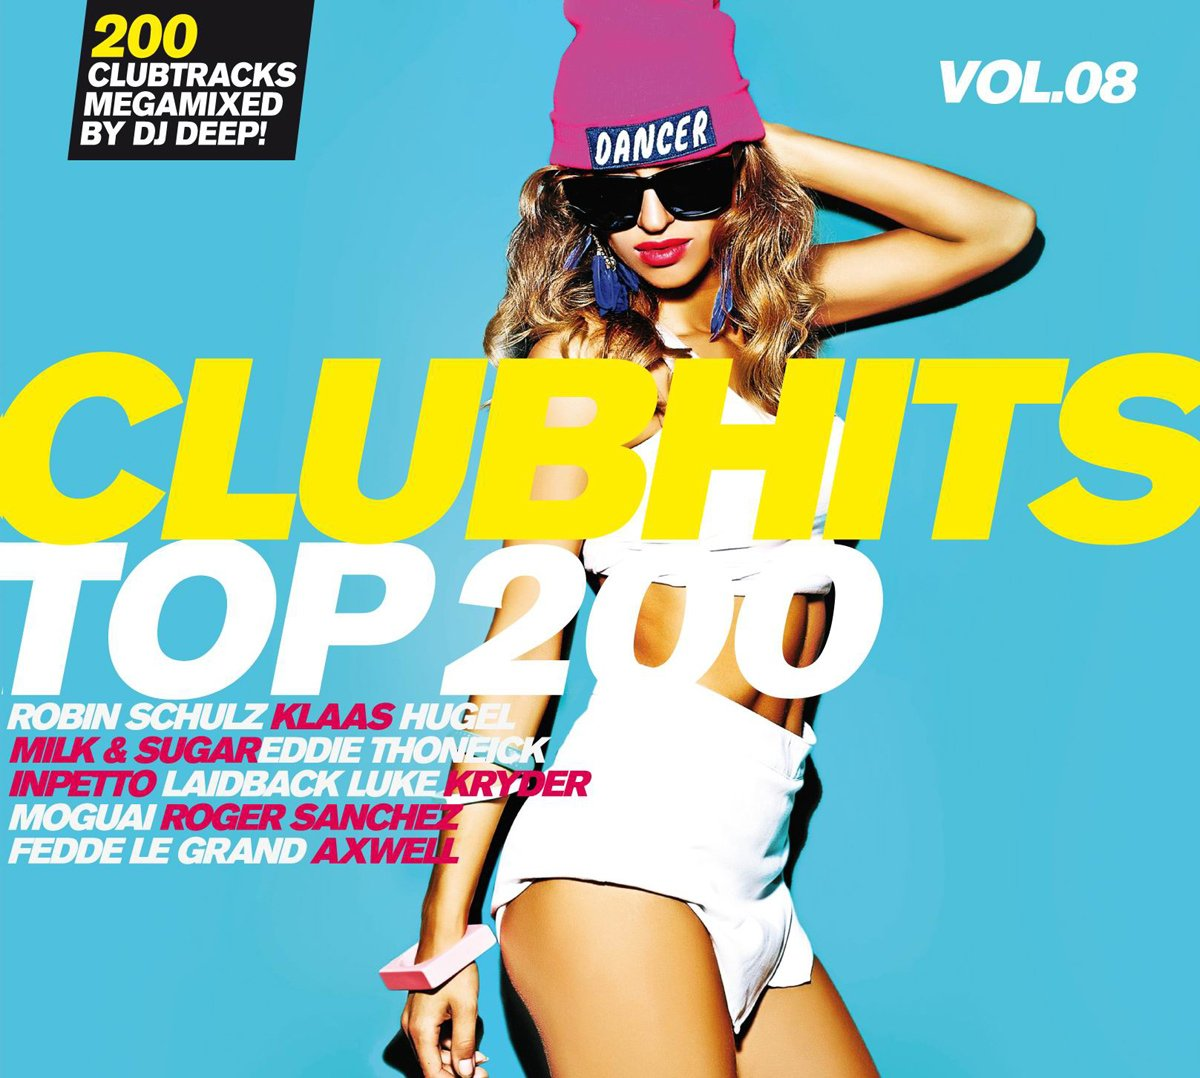 VA - Clubhits Top 200 Vol. 08 - 3CD - FLAC - 2016 - VOLDiES Download